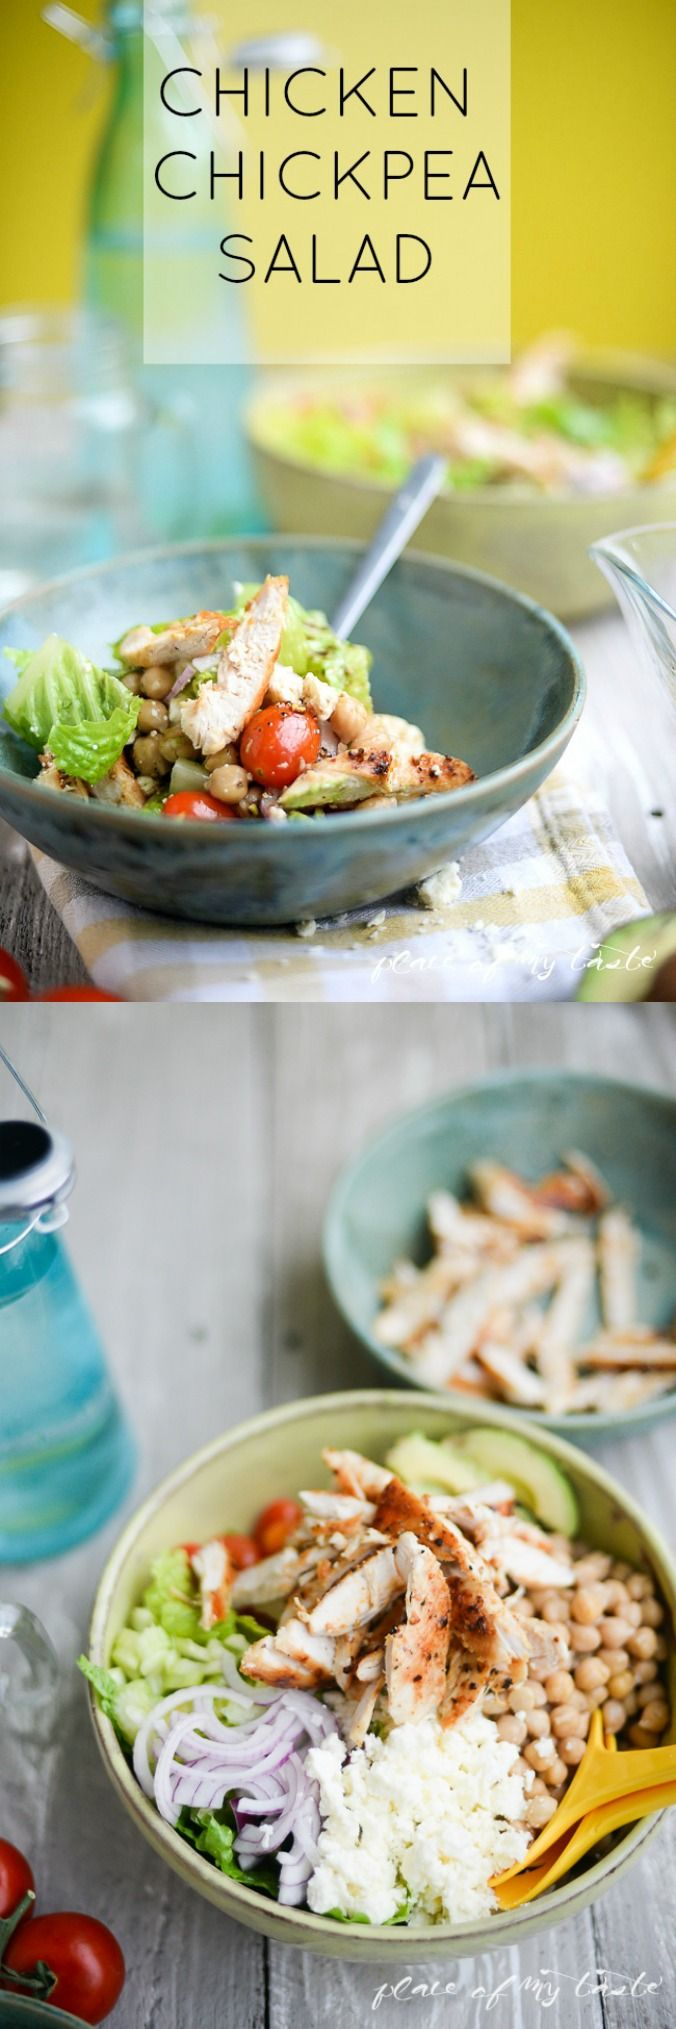 Recipe - Delicious Chicken Chickpea Salad by placeofmytaste.com